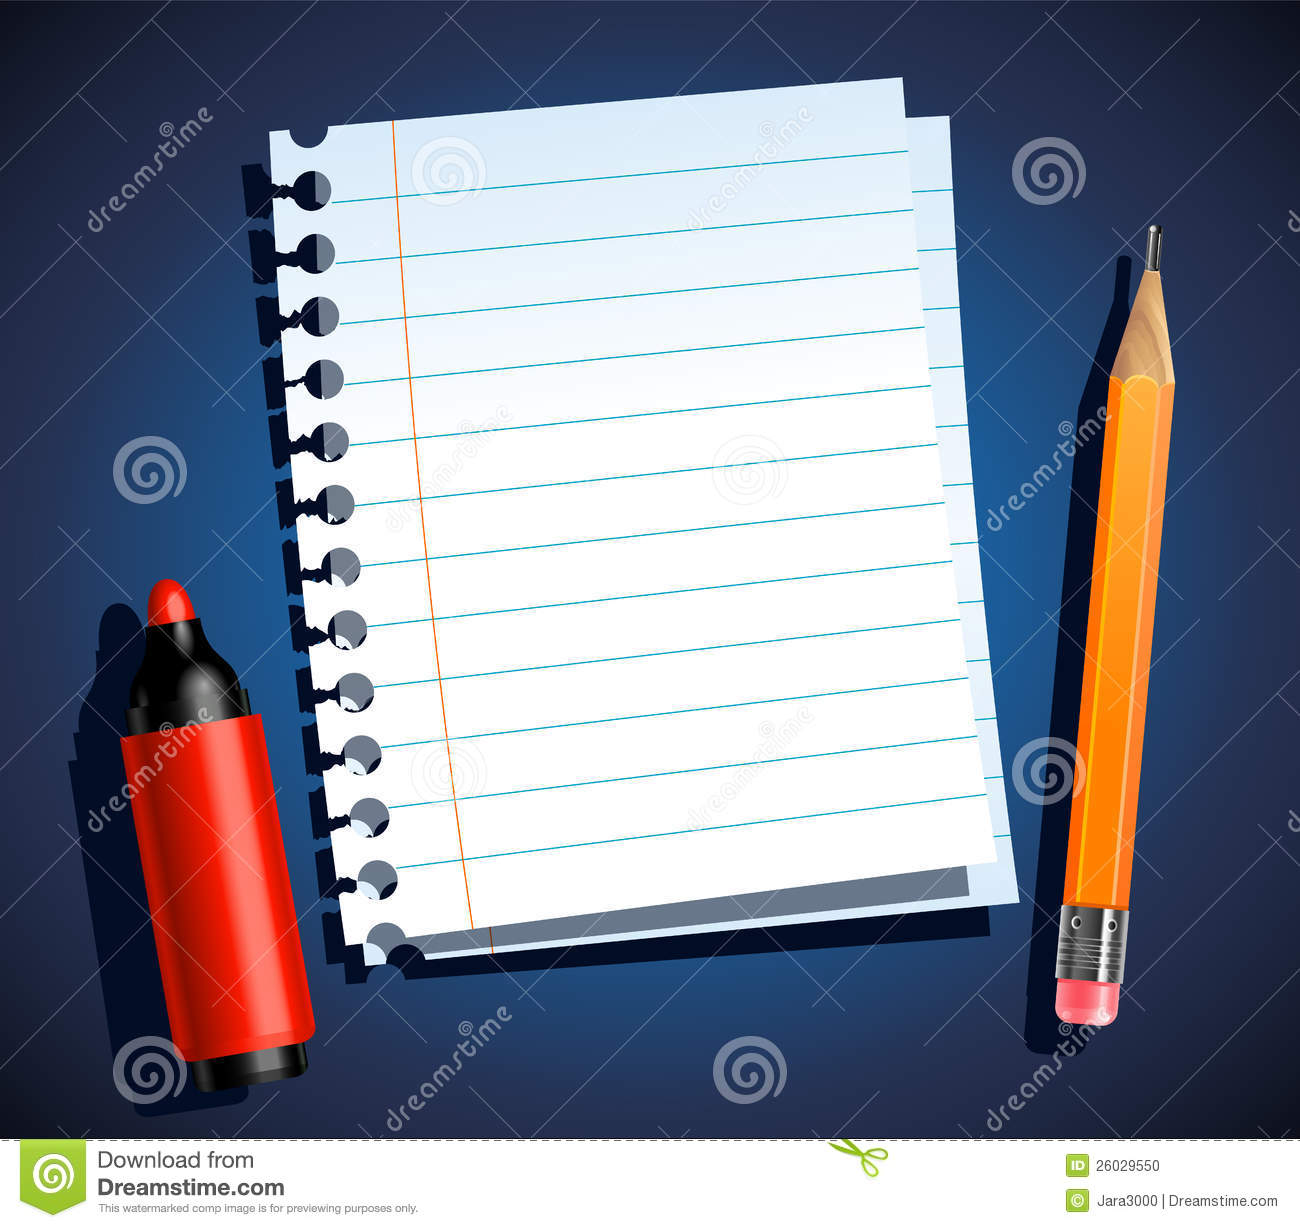 https://thumbs.dreamstime.com/z/paper-stationery-26029550.jpg